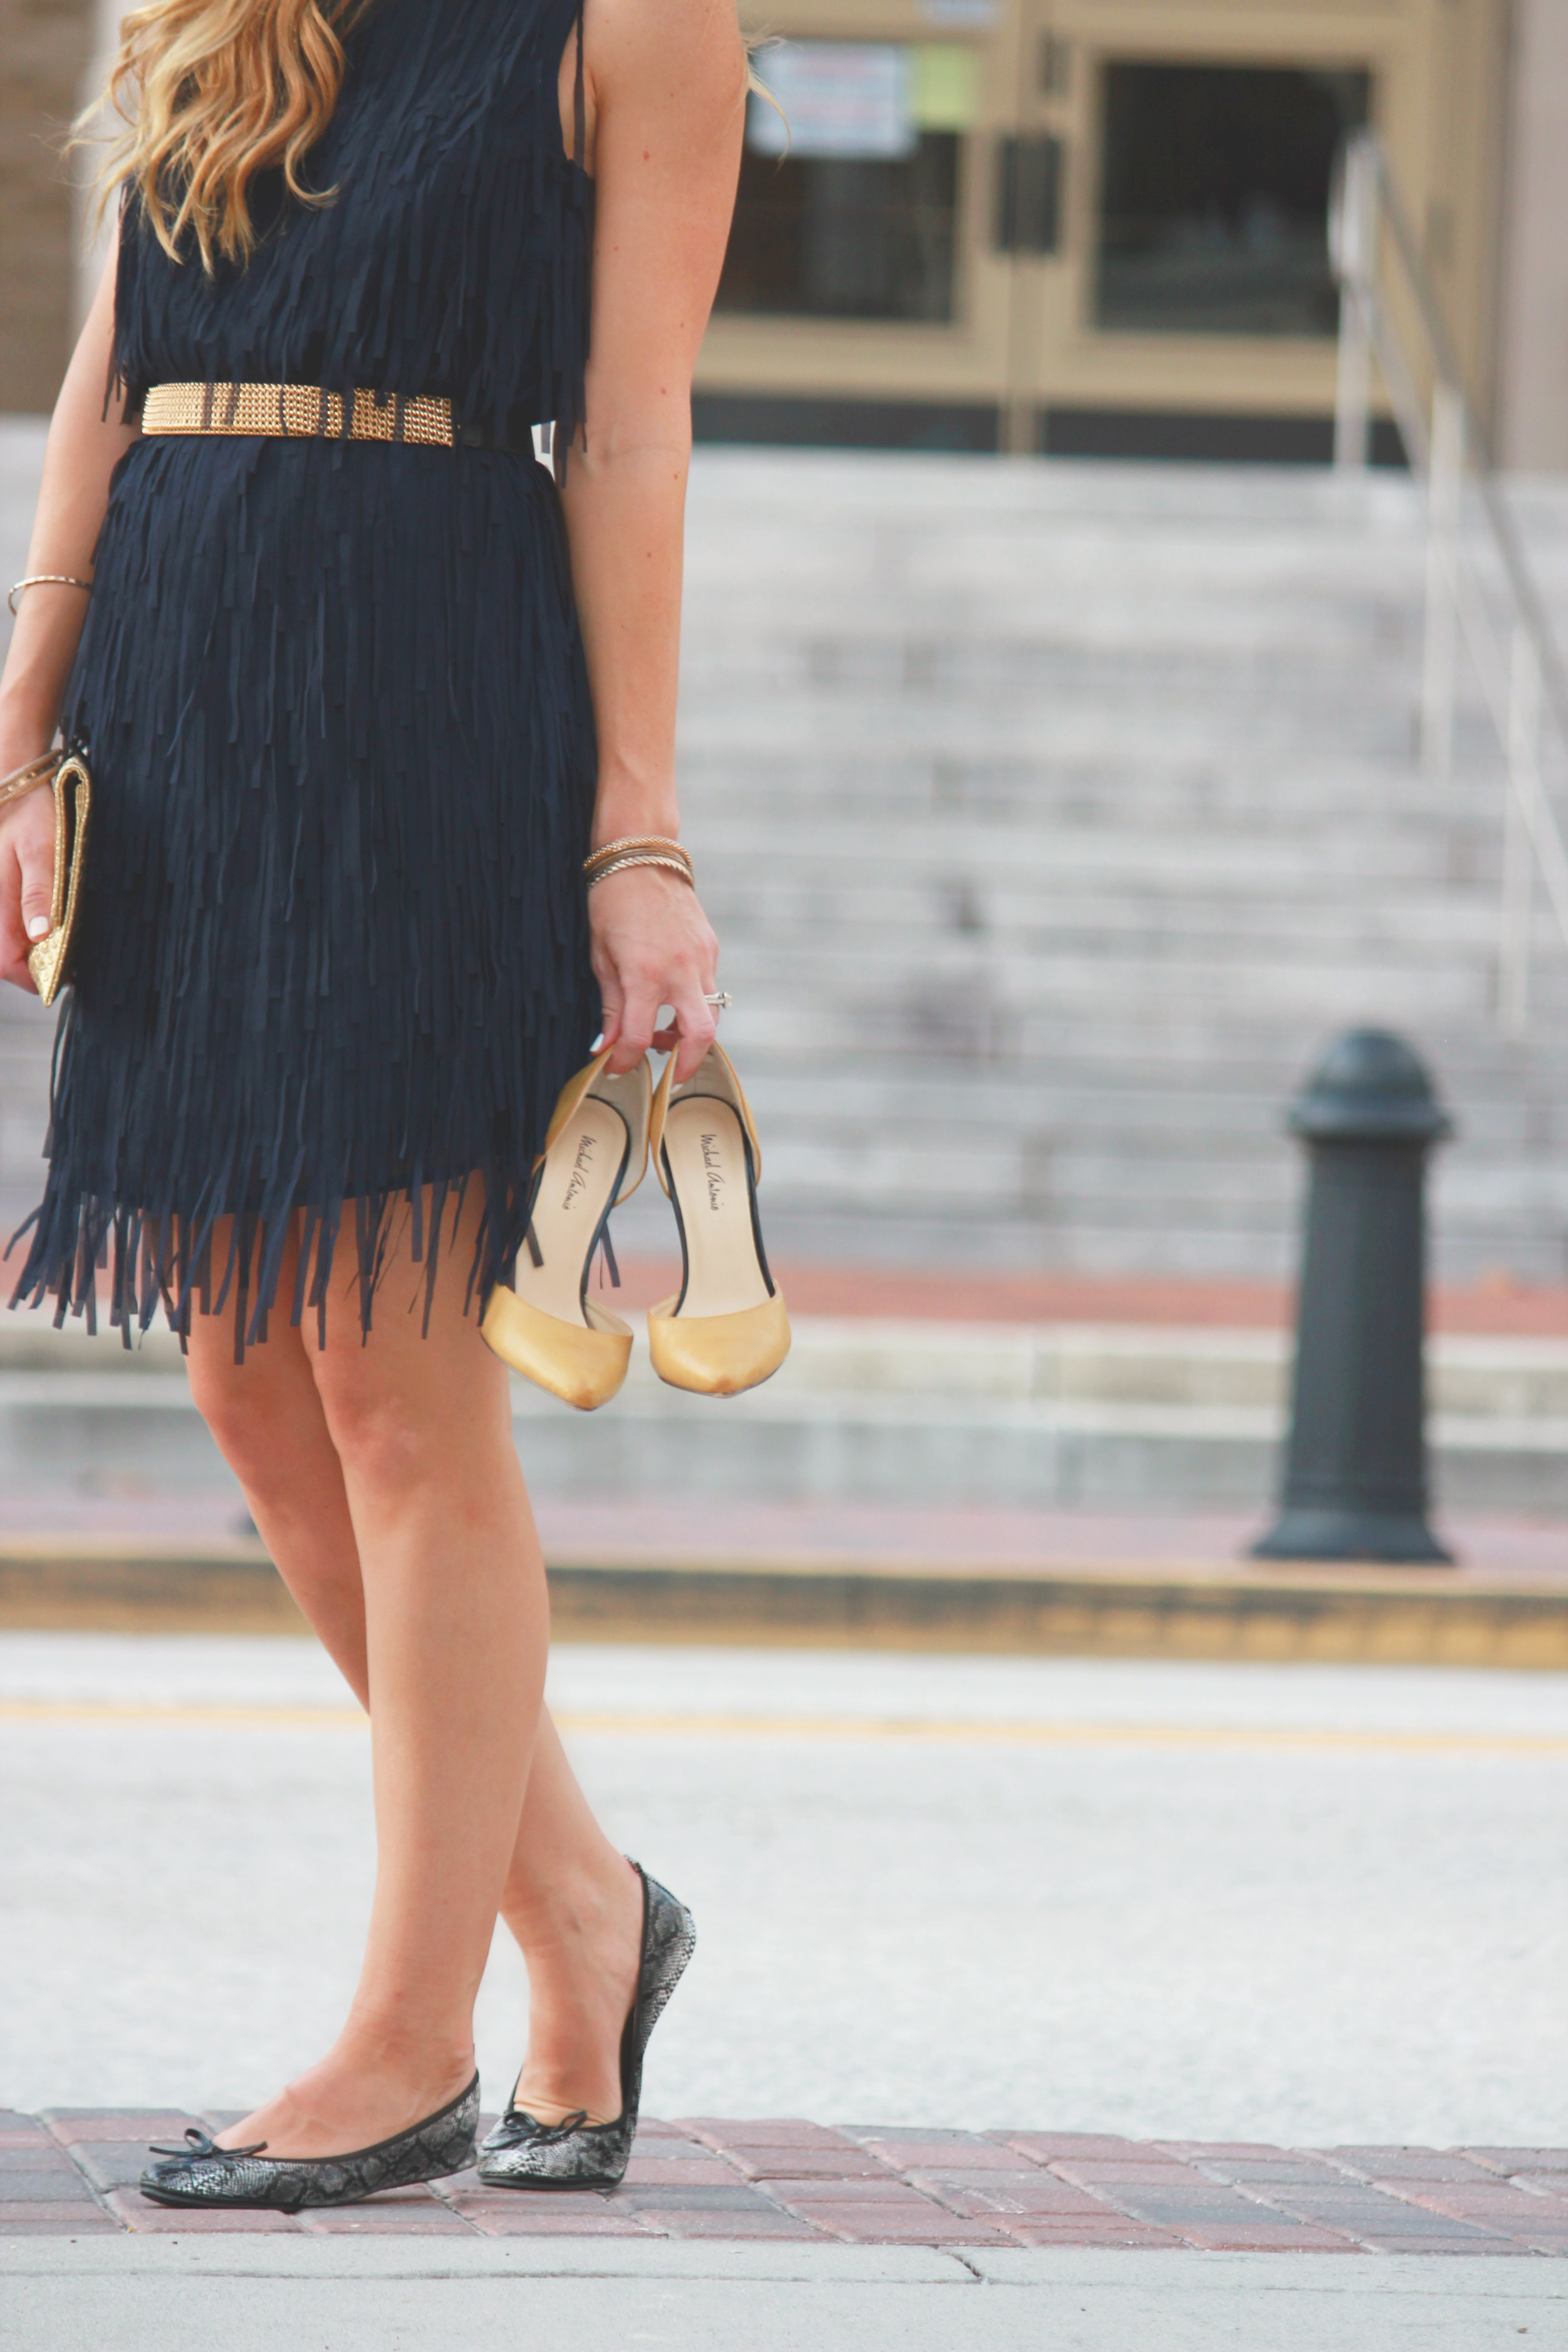 sugar love boutique dress, fringe dress, date night outfit, michael Antonio heels, summer outfit, dressy summer outfit, flapper dress, foldable flats, fold up flats, fit in clouds, snakeskin flats